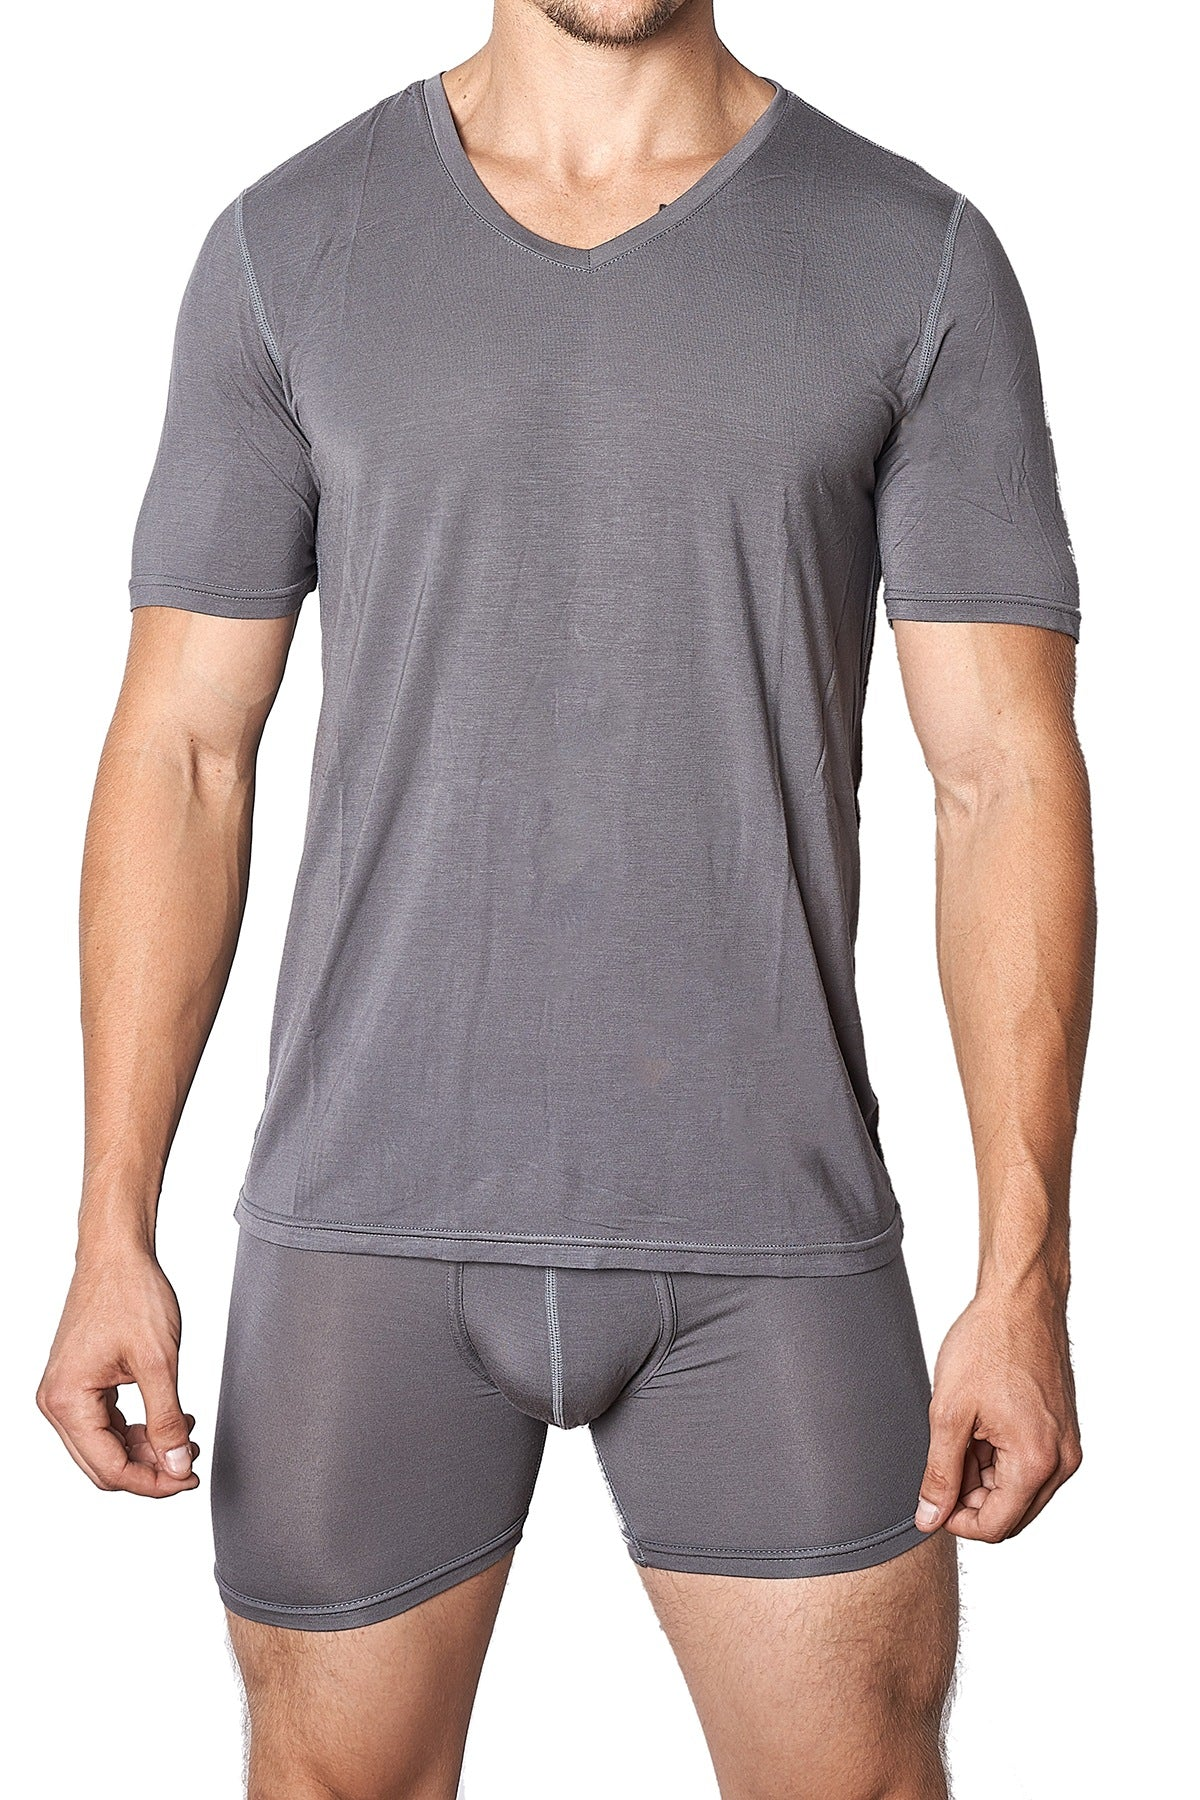 Yocisco's Slate Essentials V-Neck Shirt